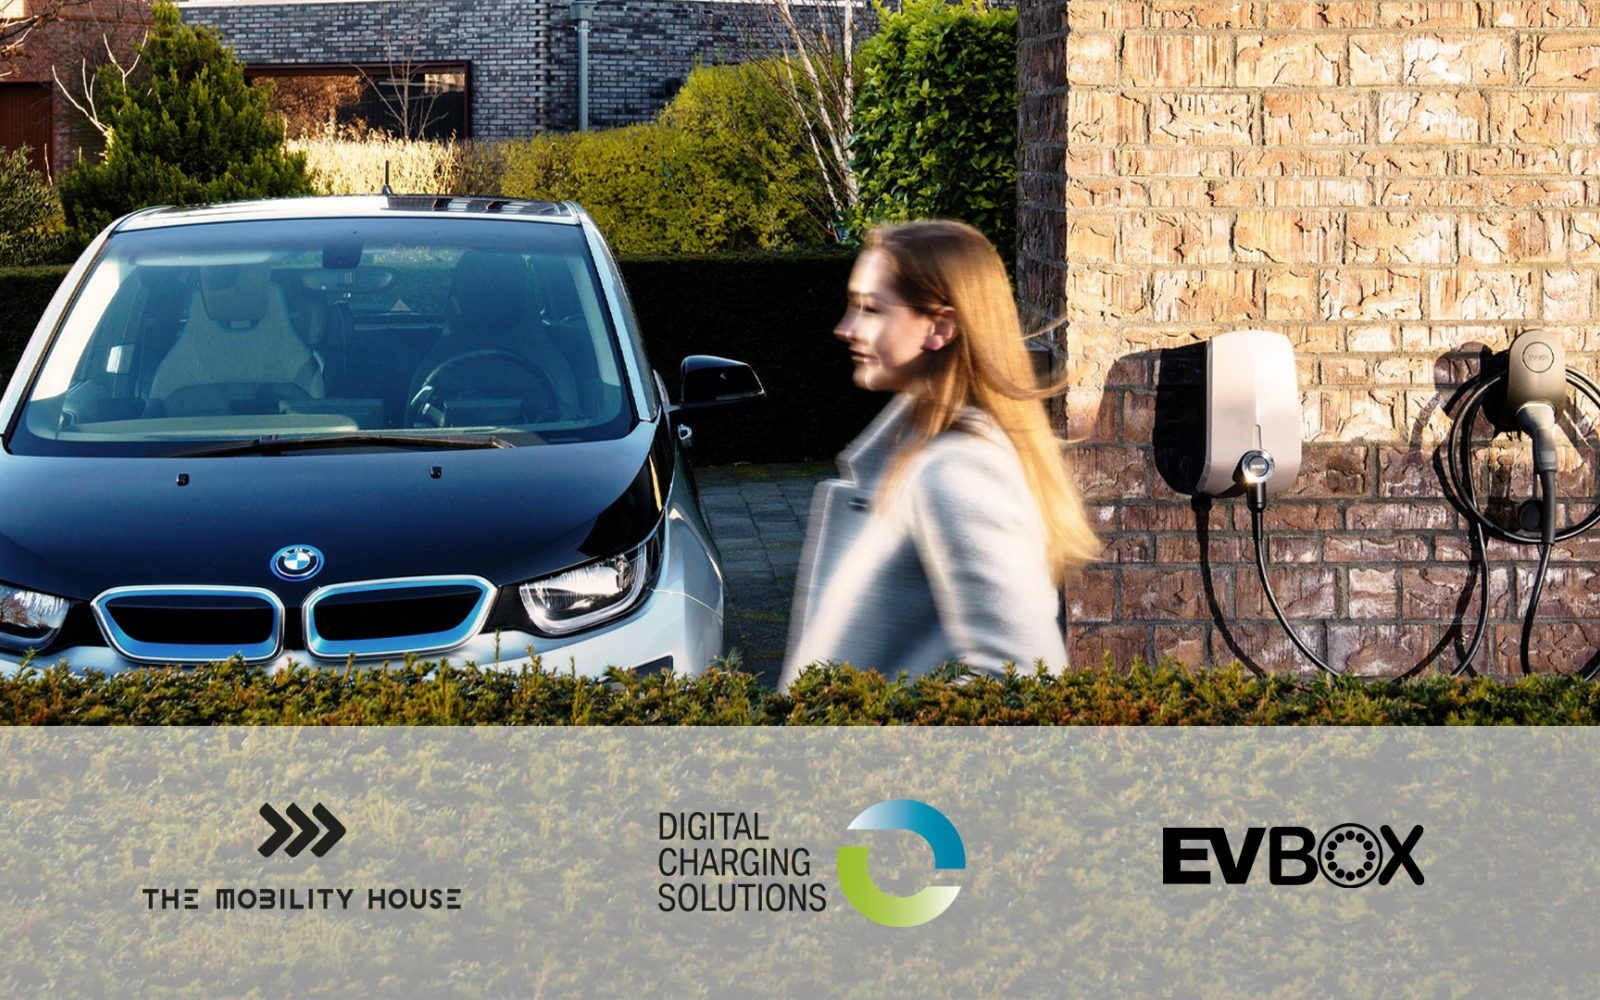 The solution enables employees to be reimbursed for the electricity they use to charge their company EV at home. Image: EVBox.